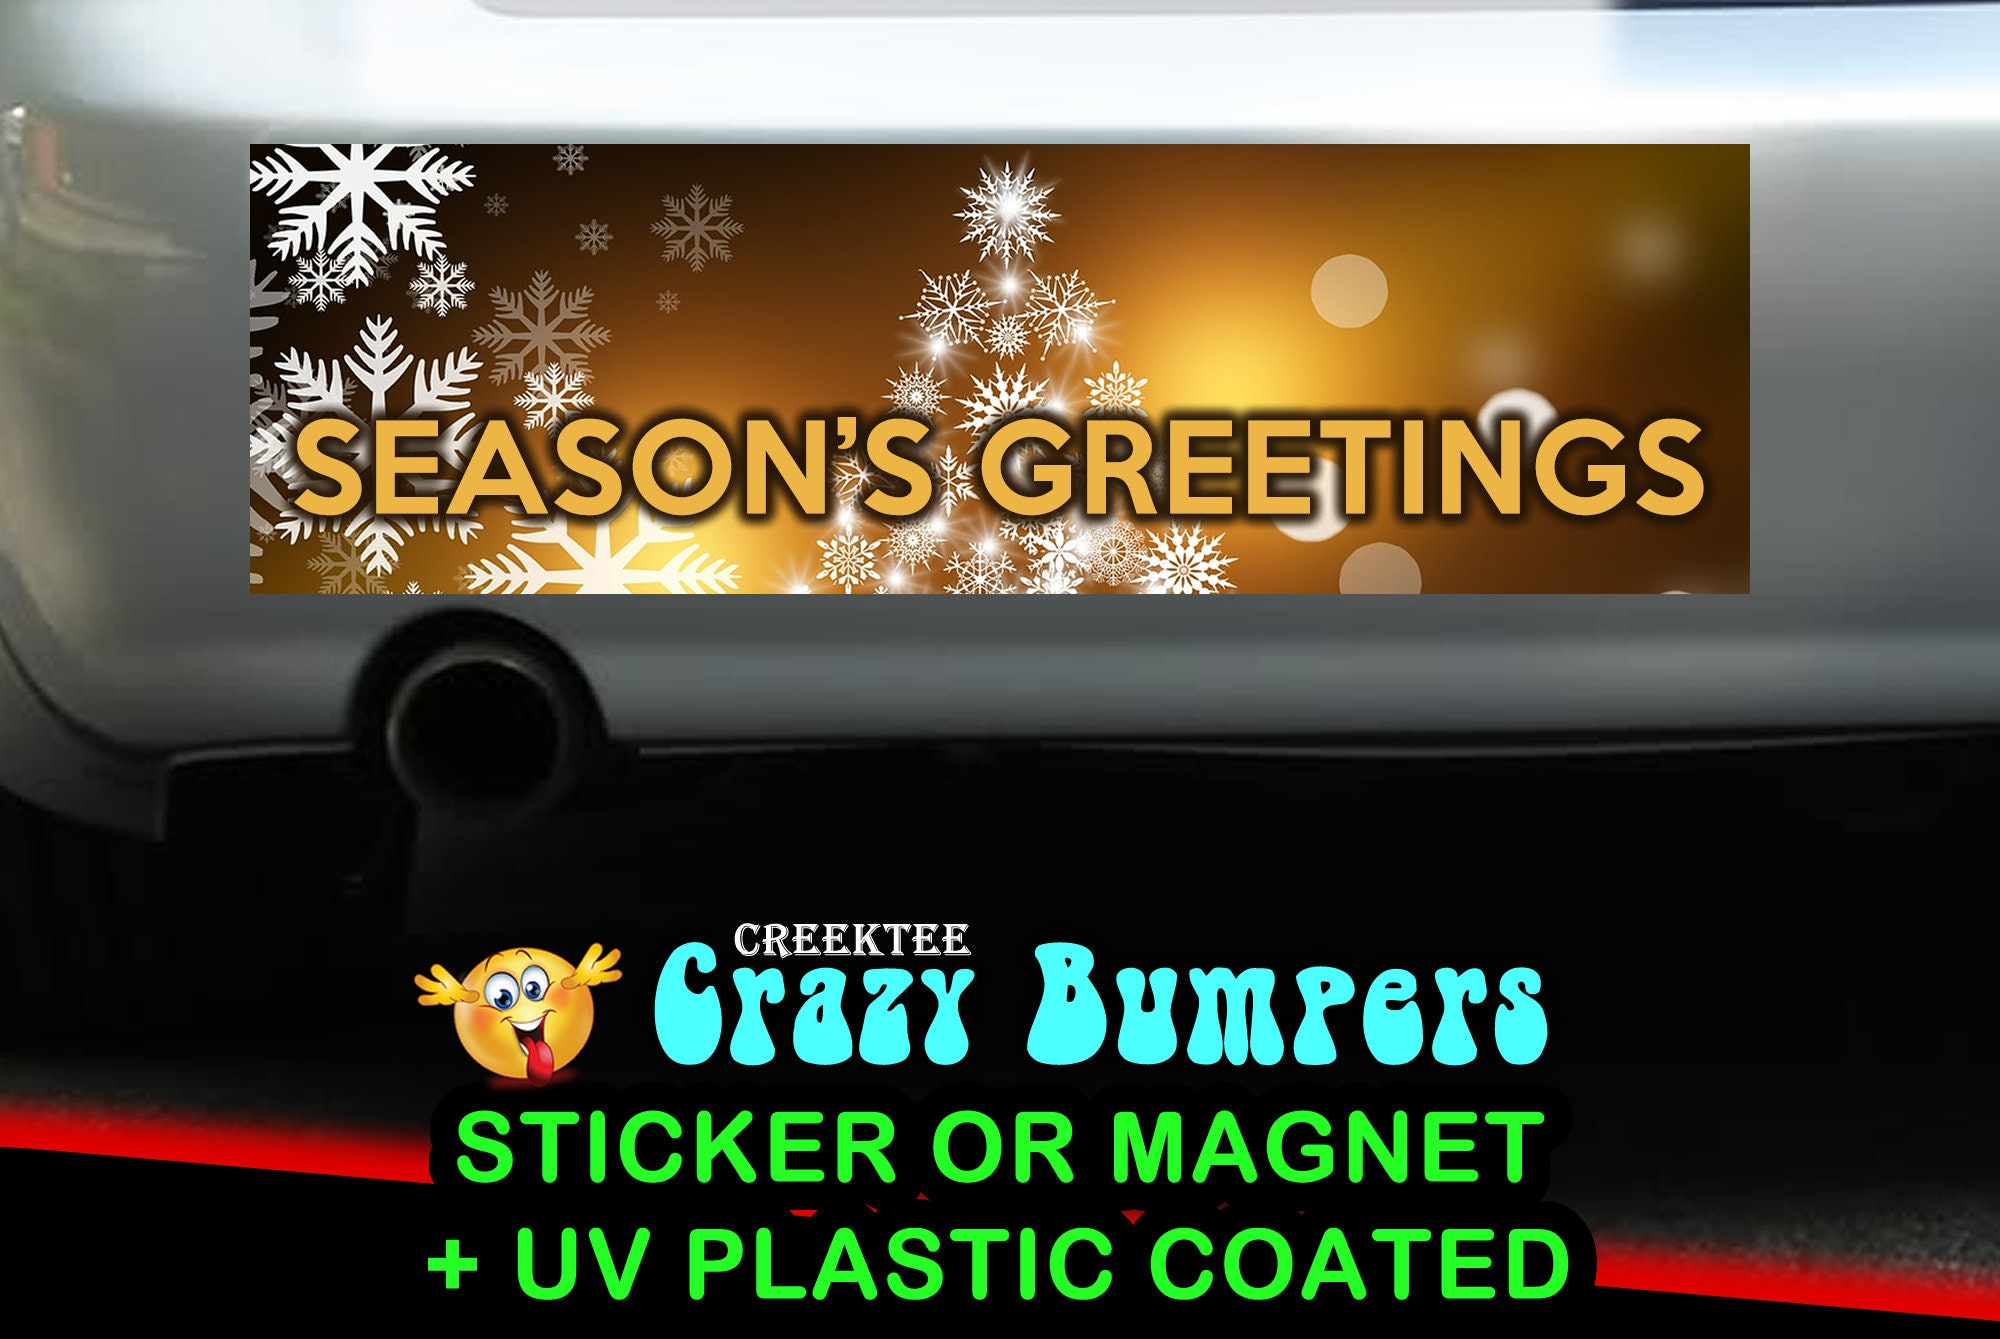 CAD$9.74 - Seasons Greetings 10 x 3 Bumper Sticker or Magnetic Bumper Sticker Available